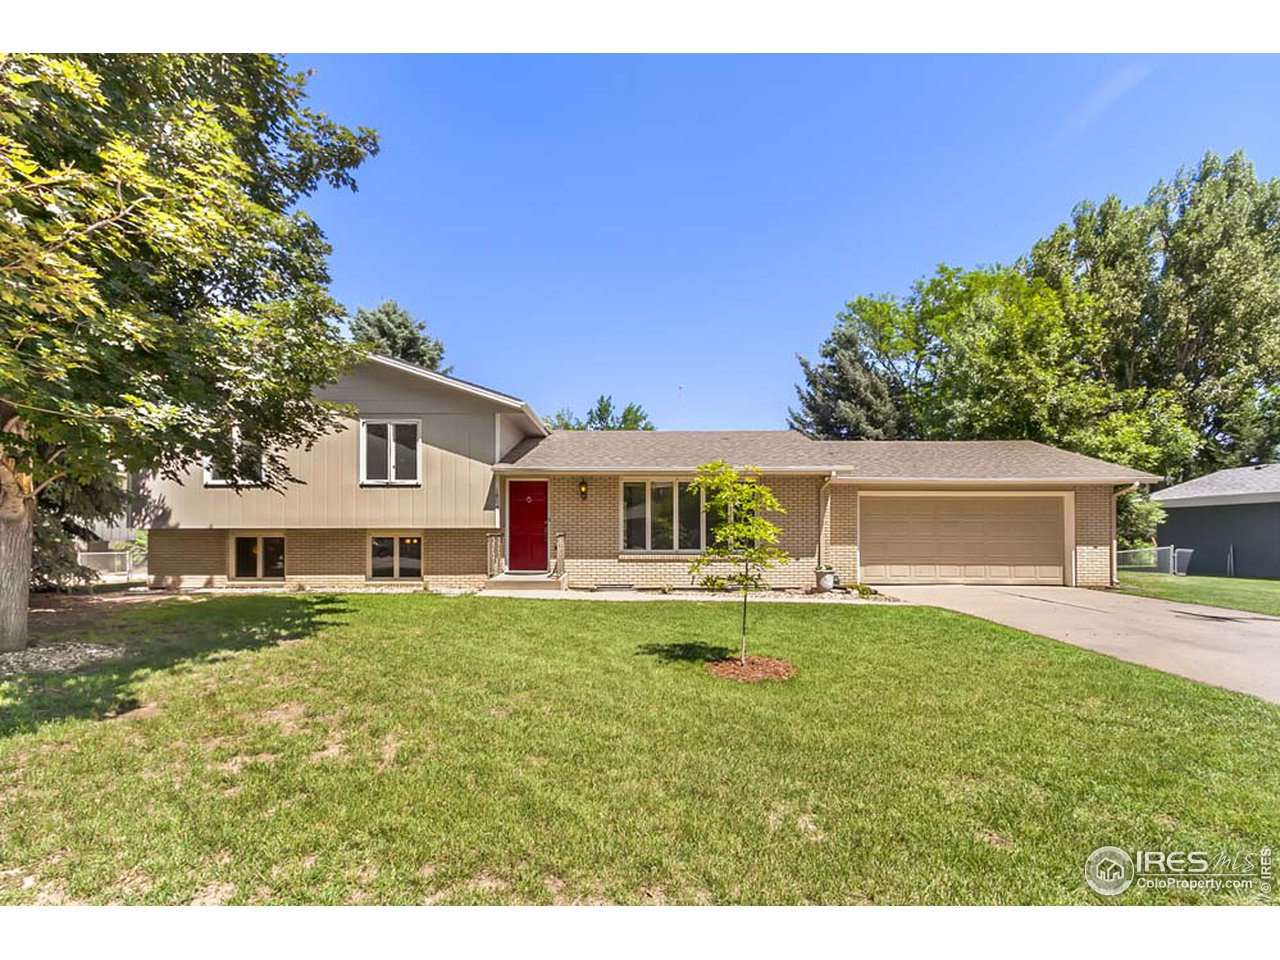 1804 Pawnee Dr, Fort Collins CO 80525